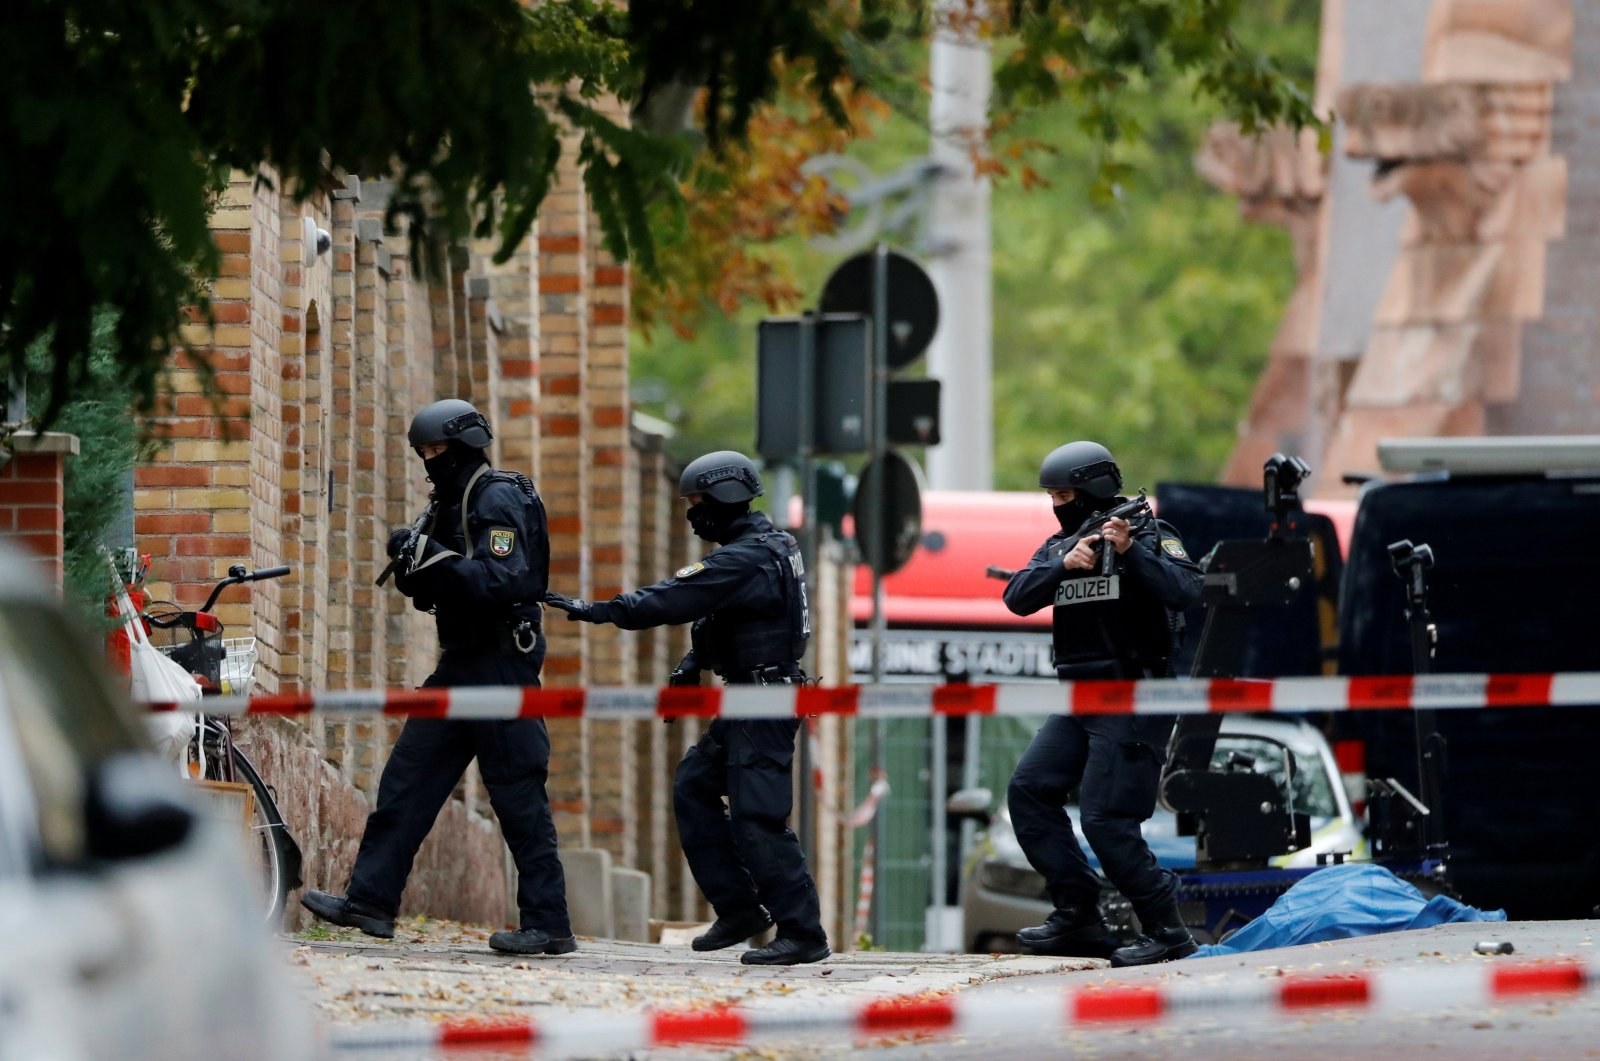 Police officers work at the site of a shooting, in which two people were killed, in Halle, Germany October 9, 2019. (Reuters Photo)